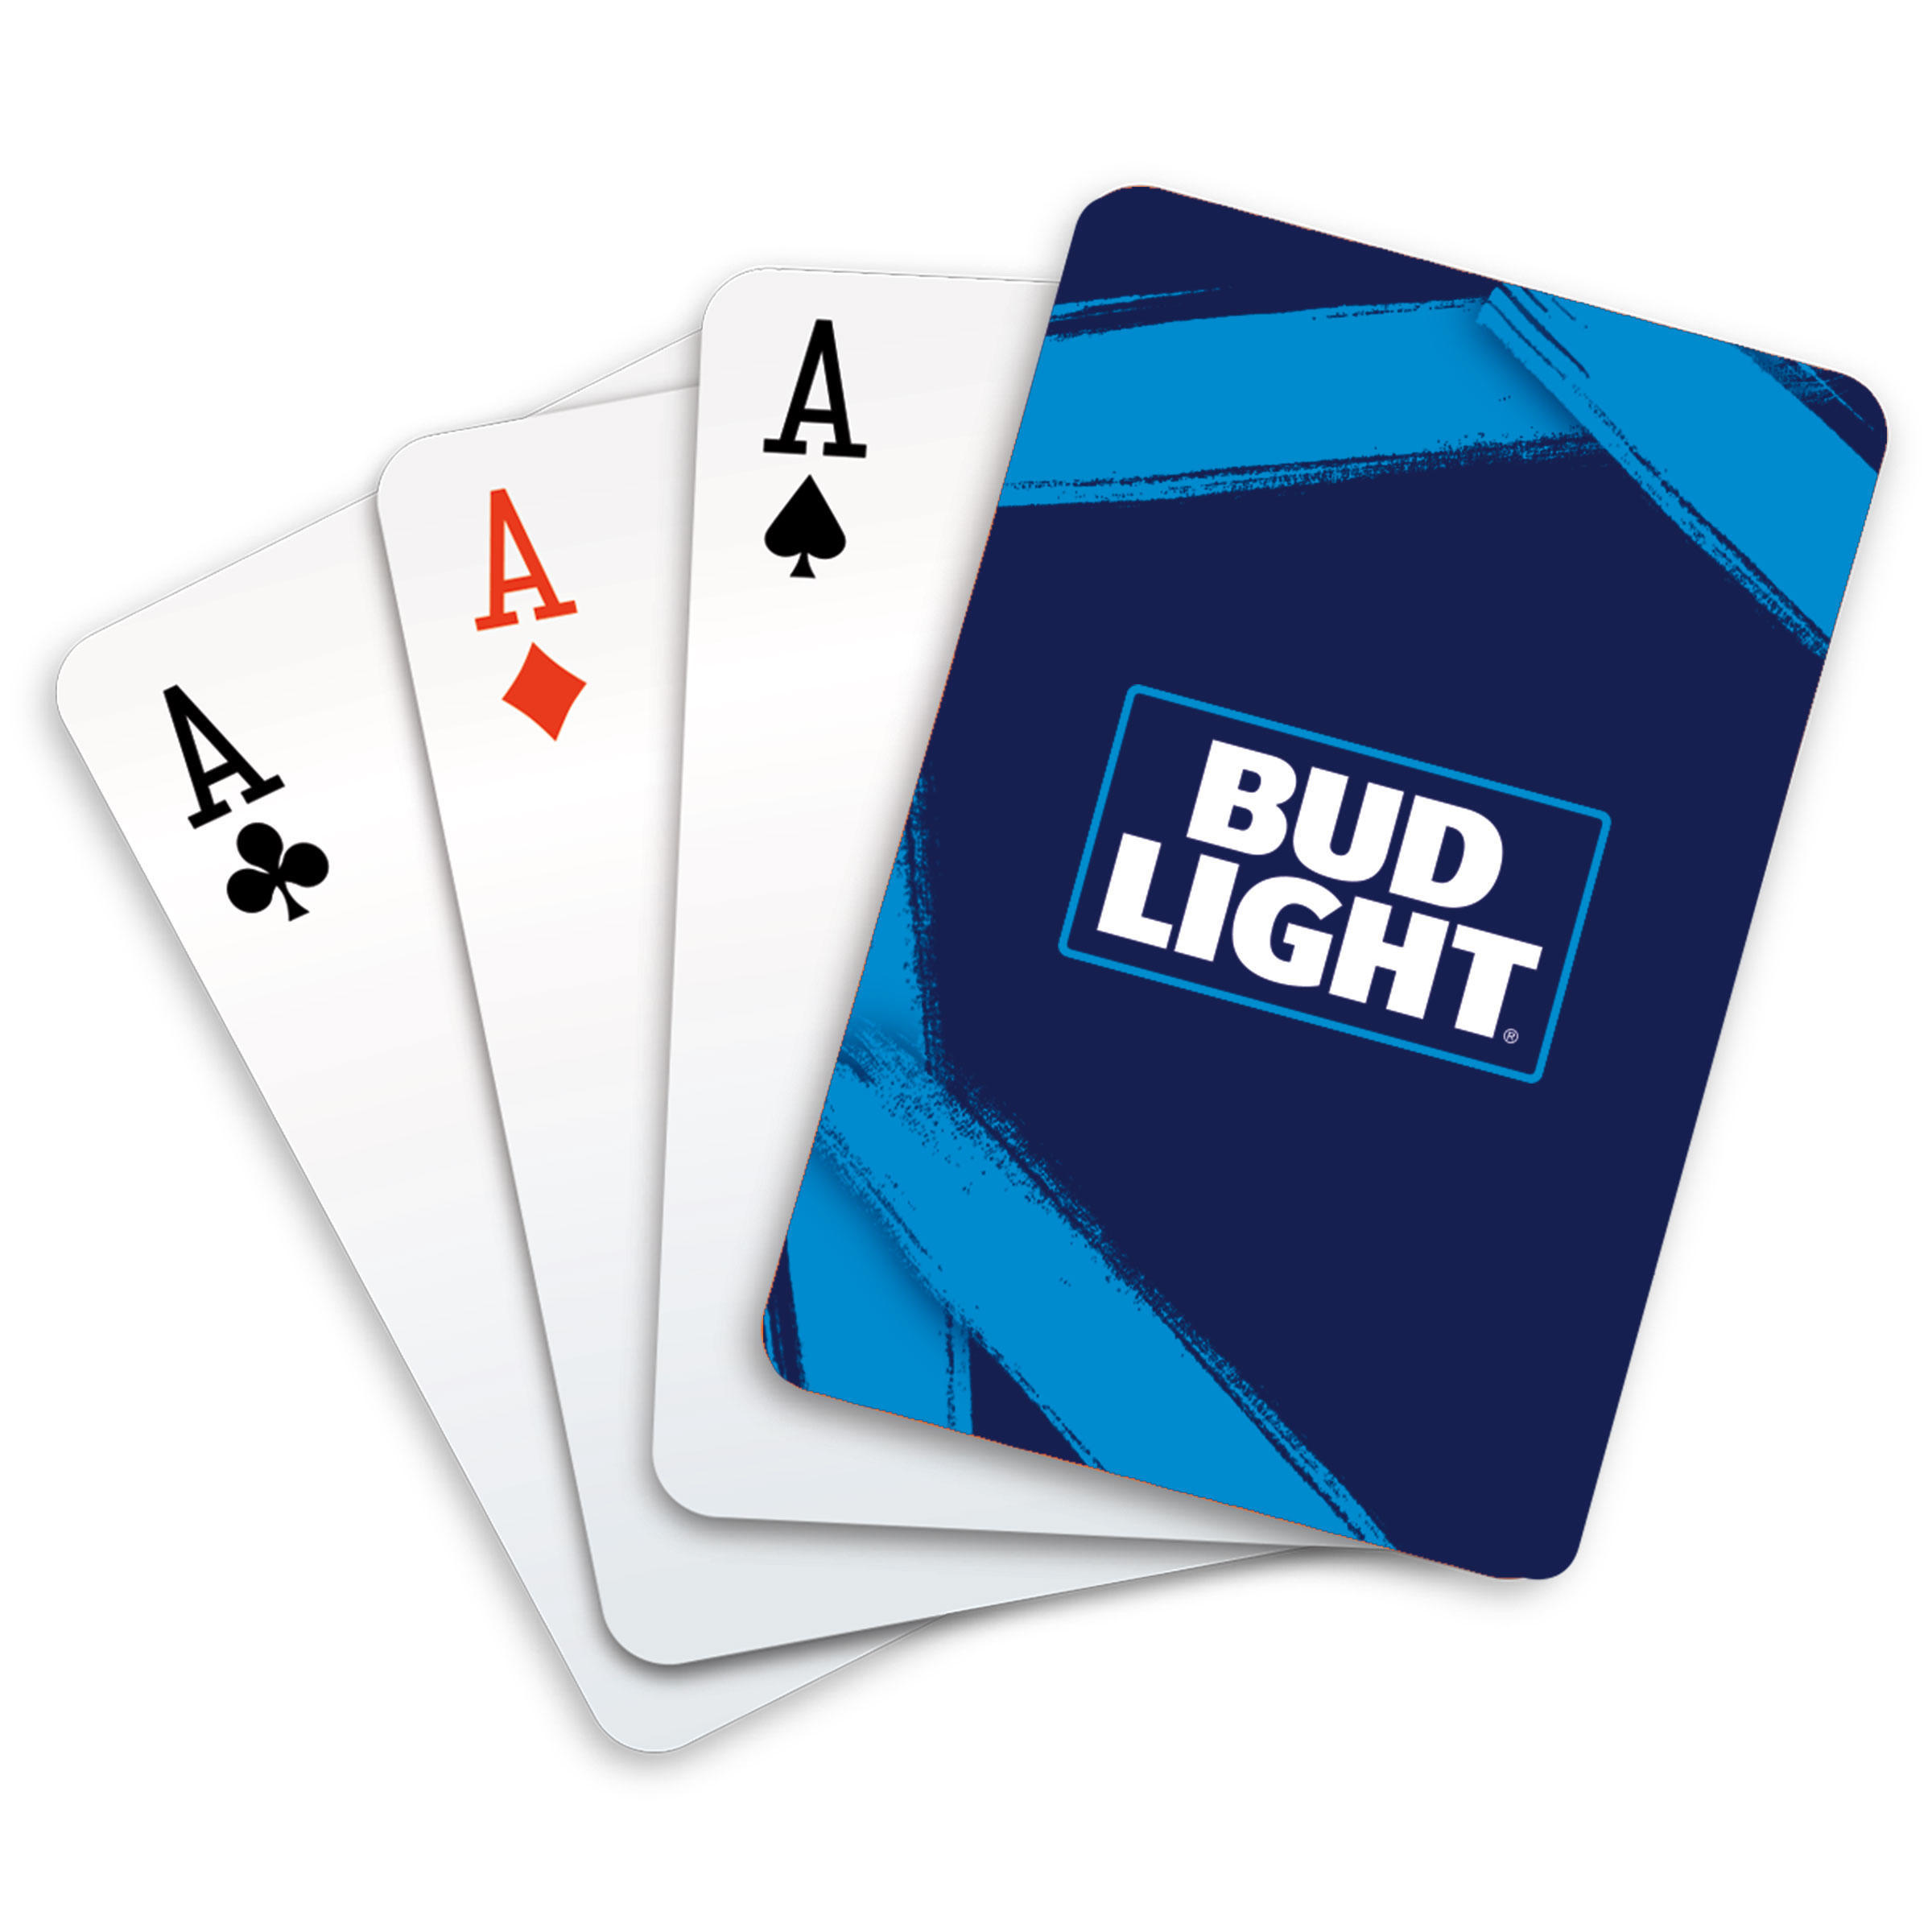 Bud Light Iconic Blue Label Playing Cards